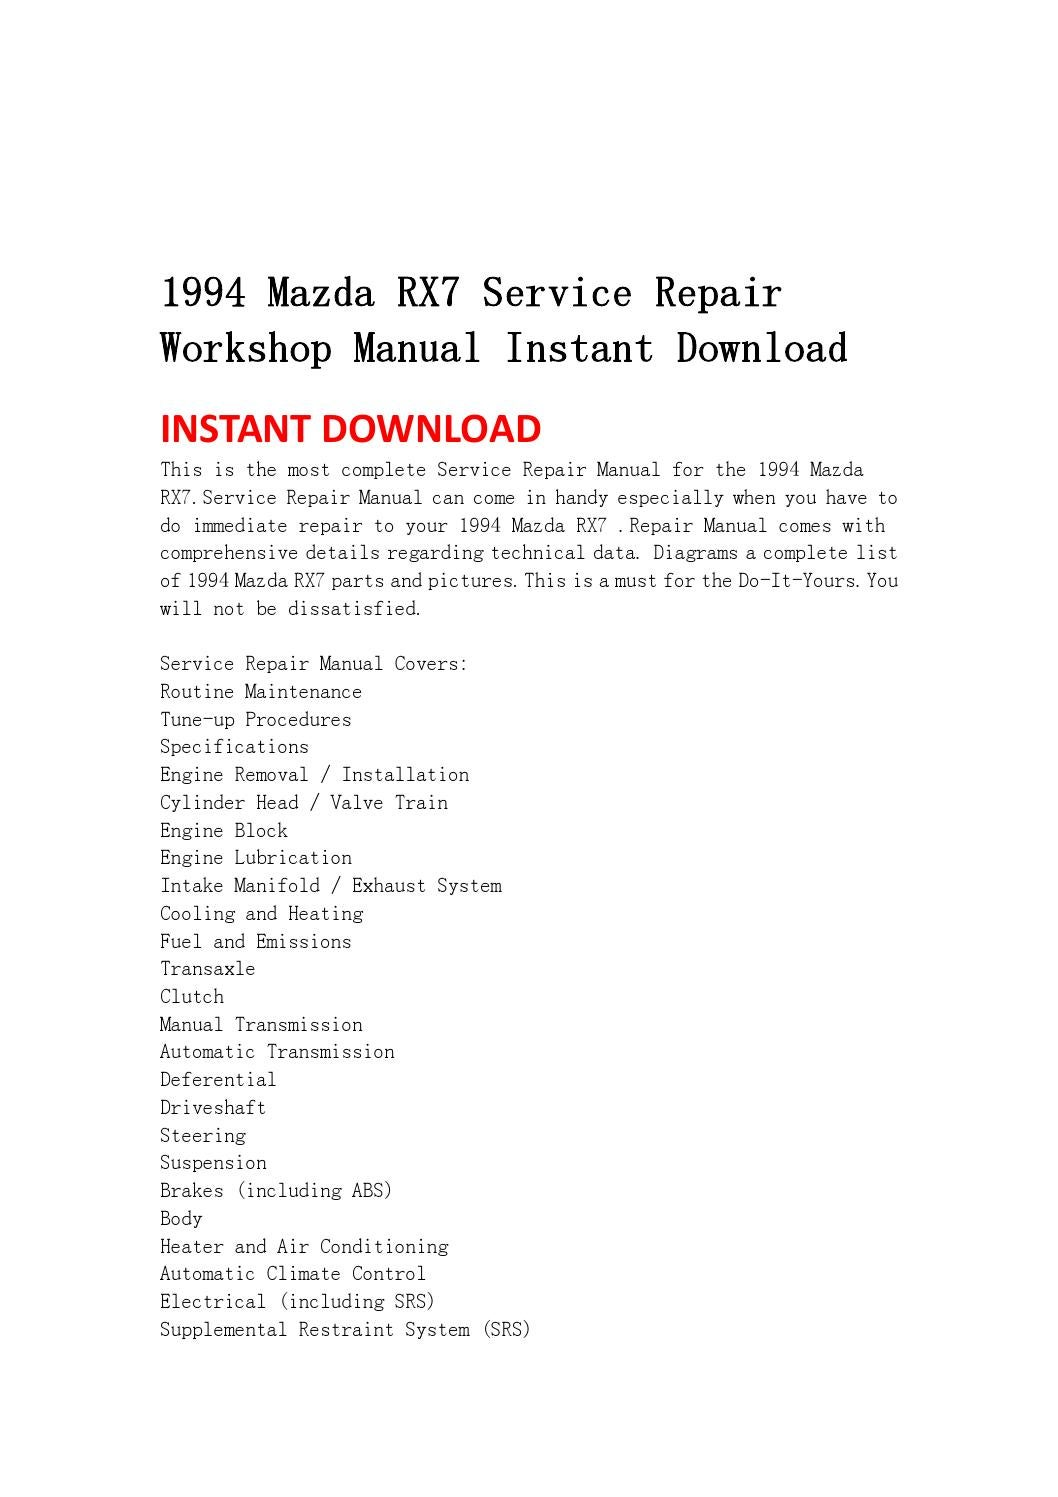 Mazda Rx 7 1994 Service Repair Manual Electrical 1984 Engine Diagram Rx7 Workshop Instant Download By Sjefhsnen Issuu